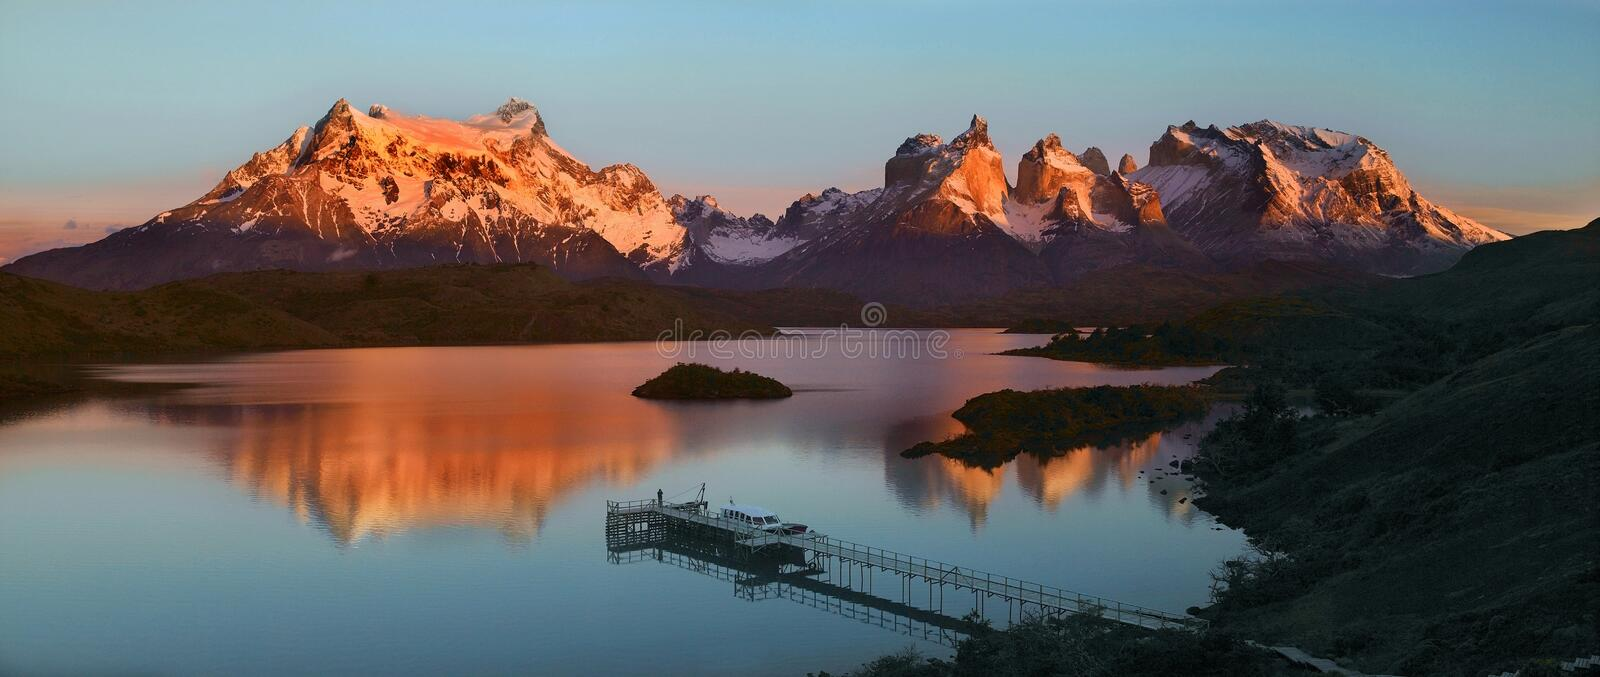 Torres Del Paine park narodowy Chile - Patagonia - obraz royalty free